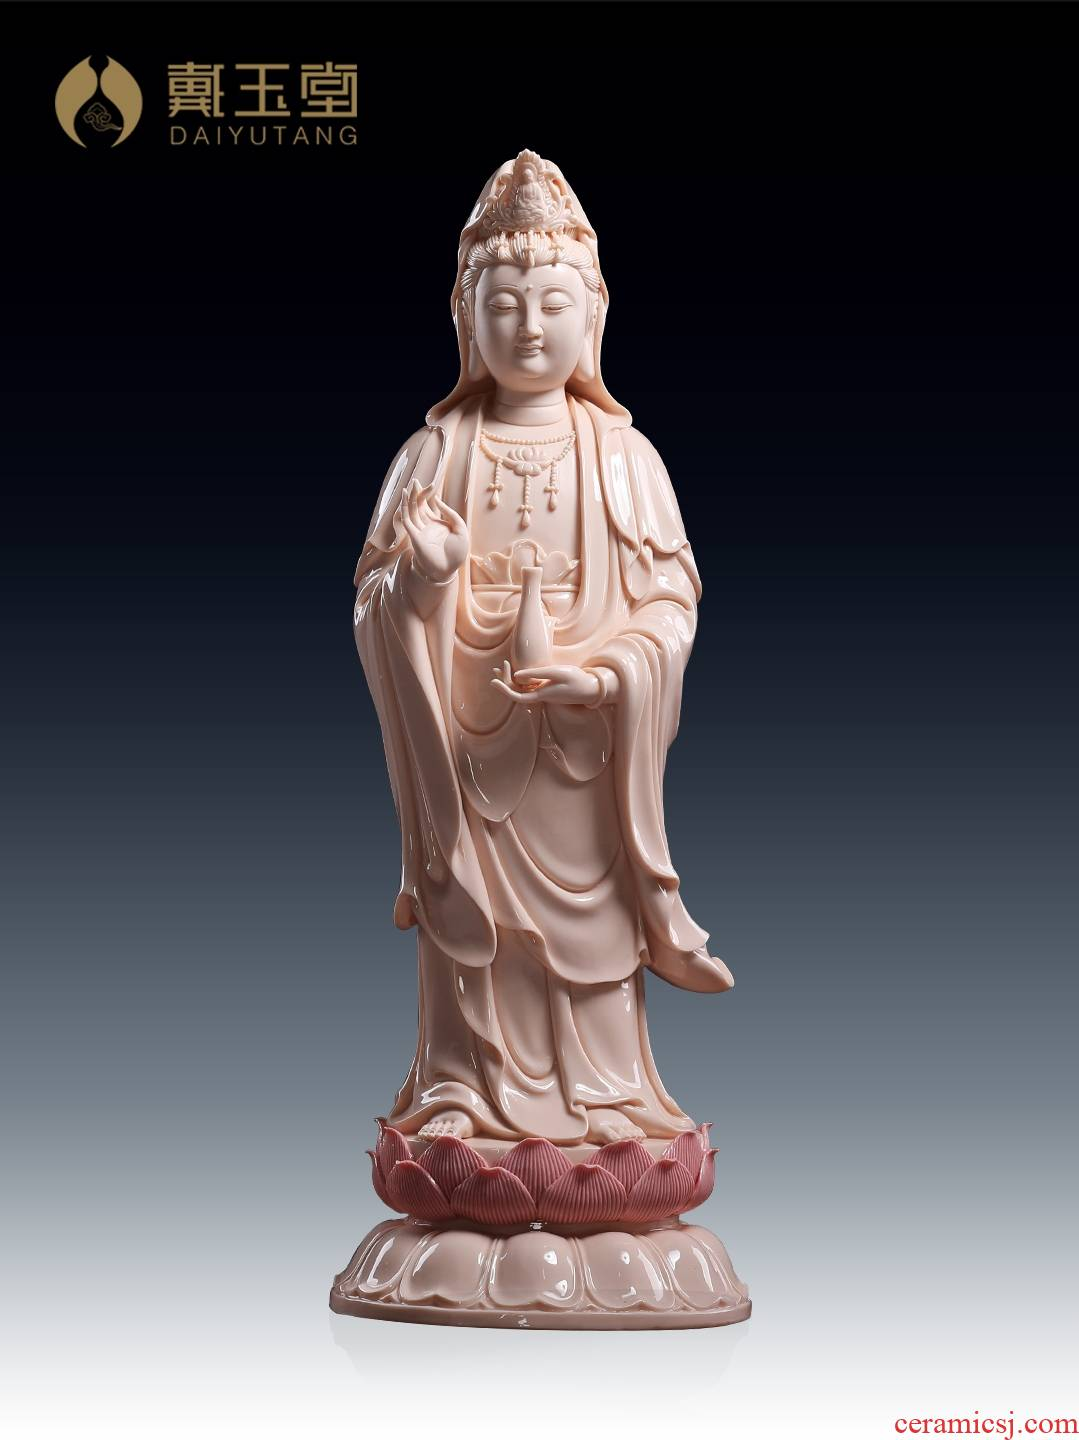 Yutang dai sound bodhisattva guanyin Buddha enshrined household ceramics furnishing articles 18 inches GuLian guanyin